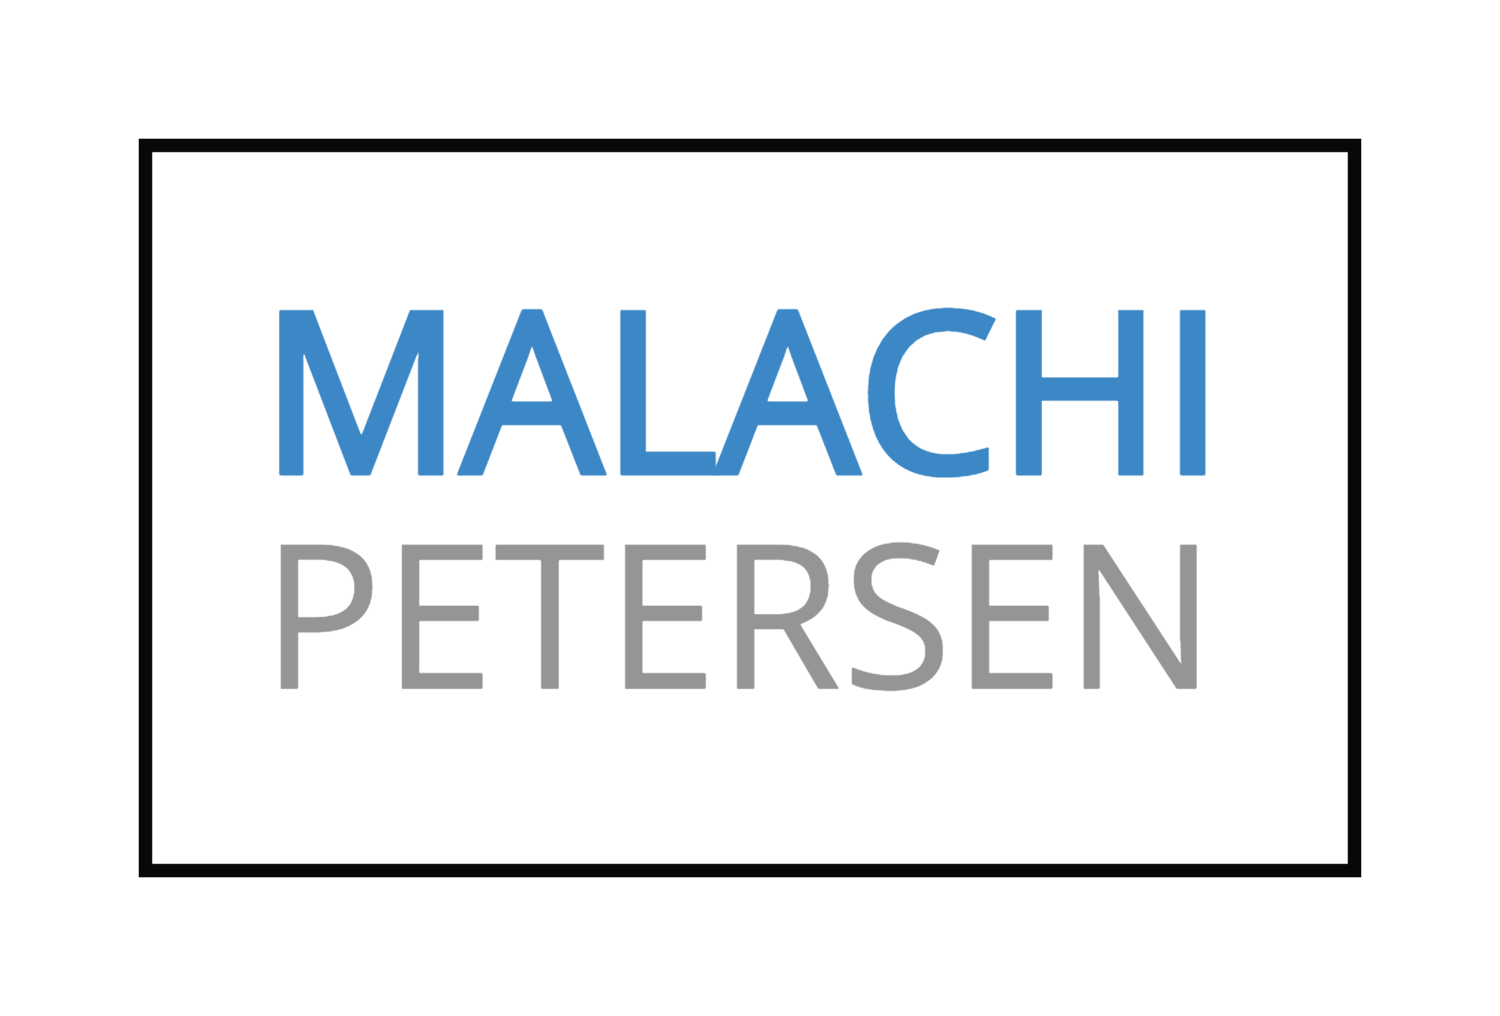 Malachi Petersen